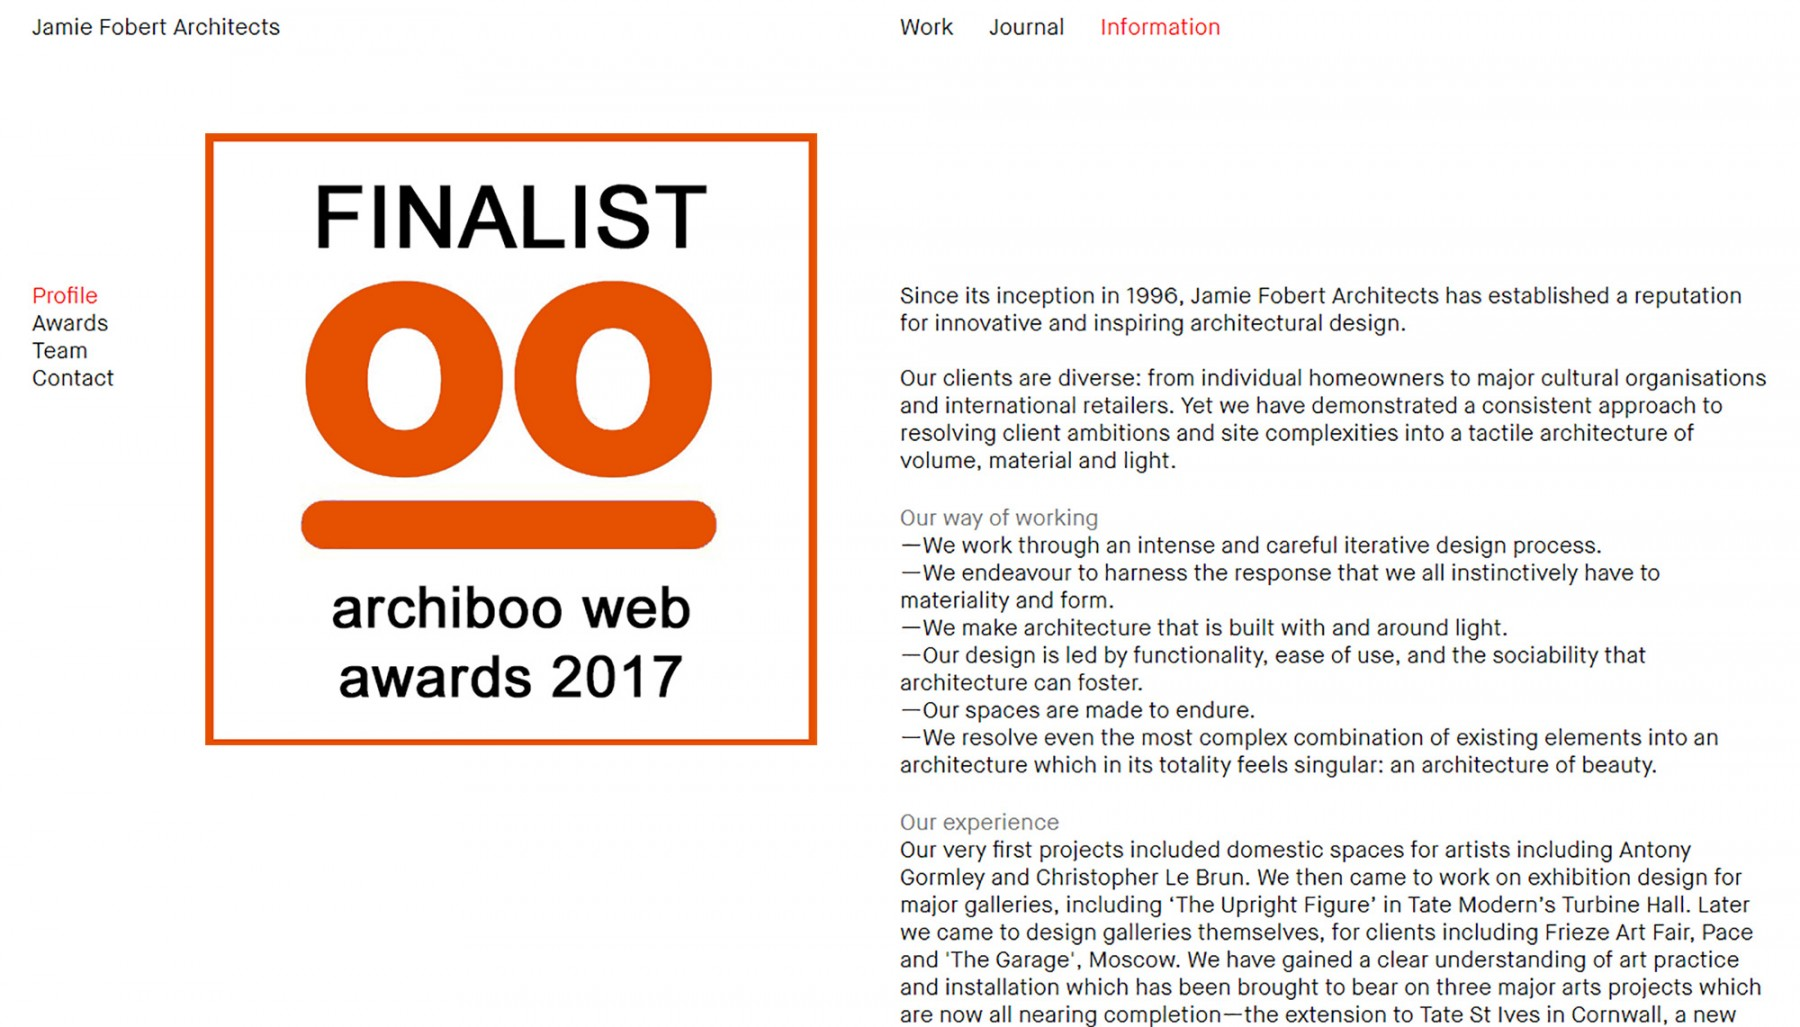 Archiboo web awards shortlist